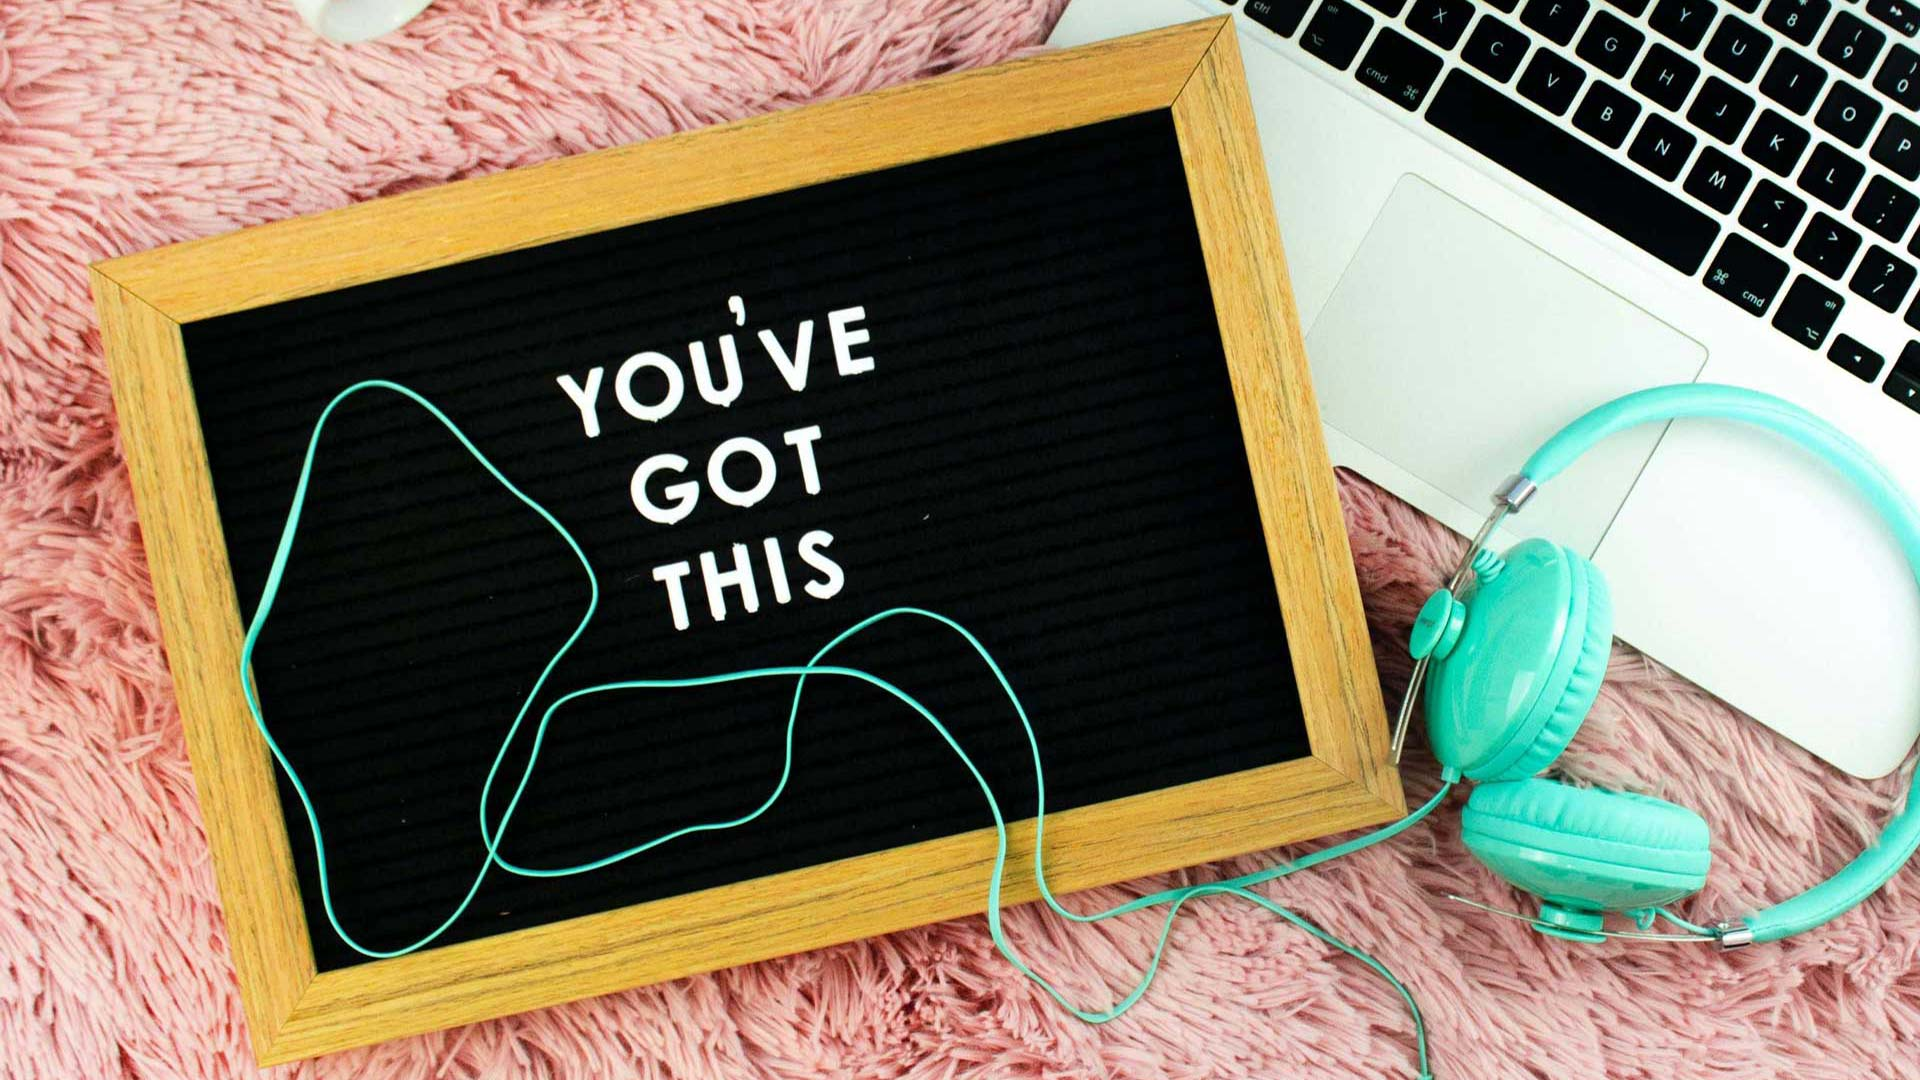 'you got this' written on small chalkboard